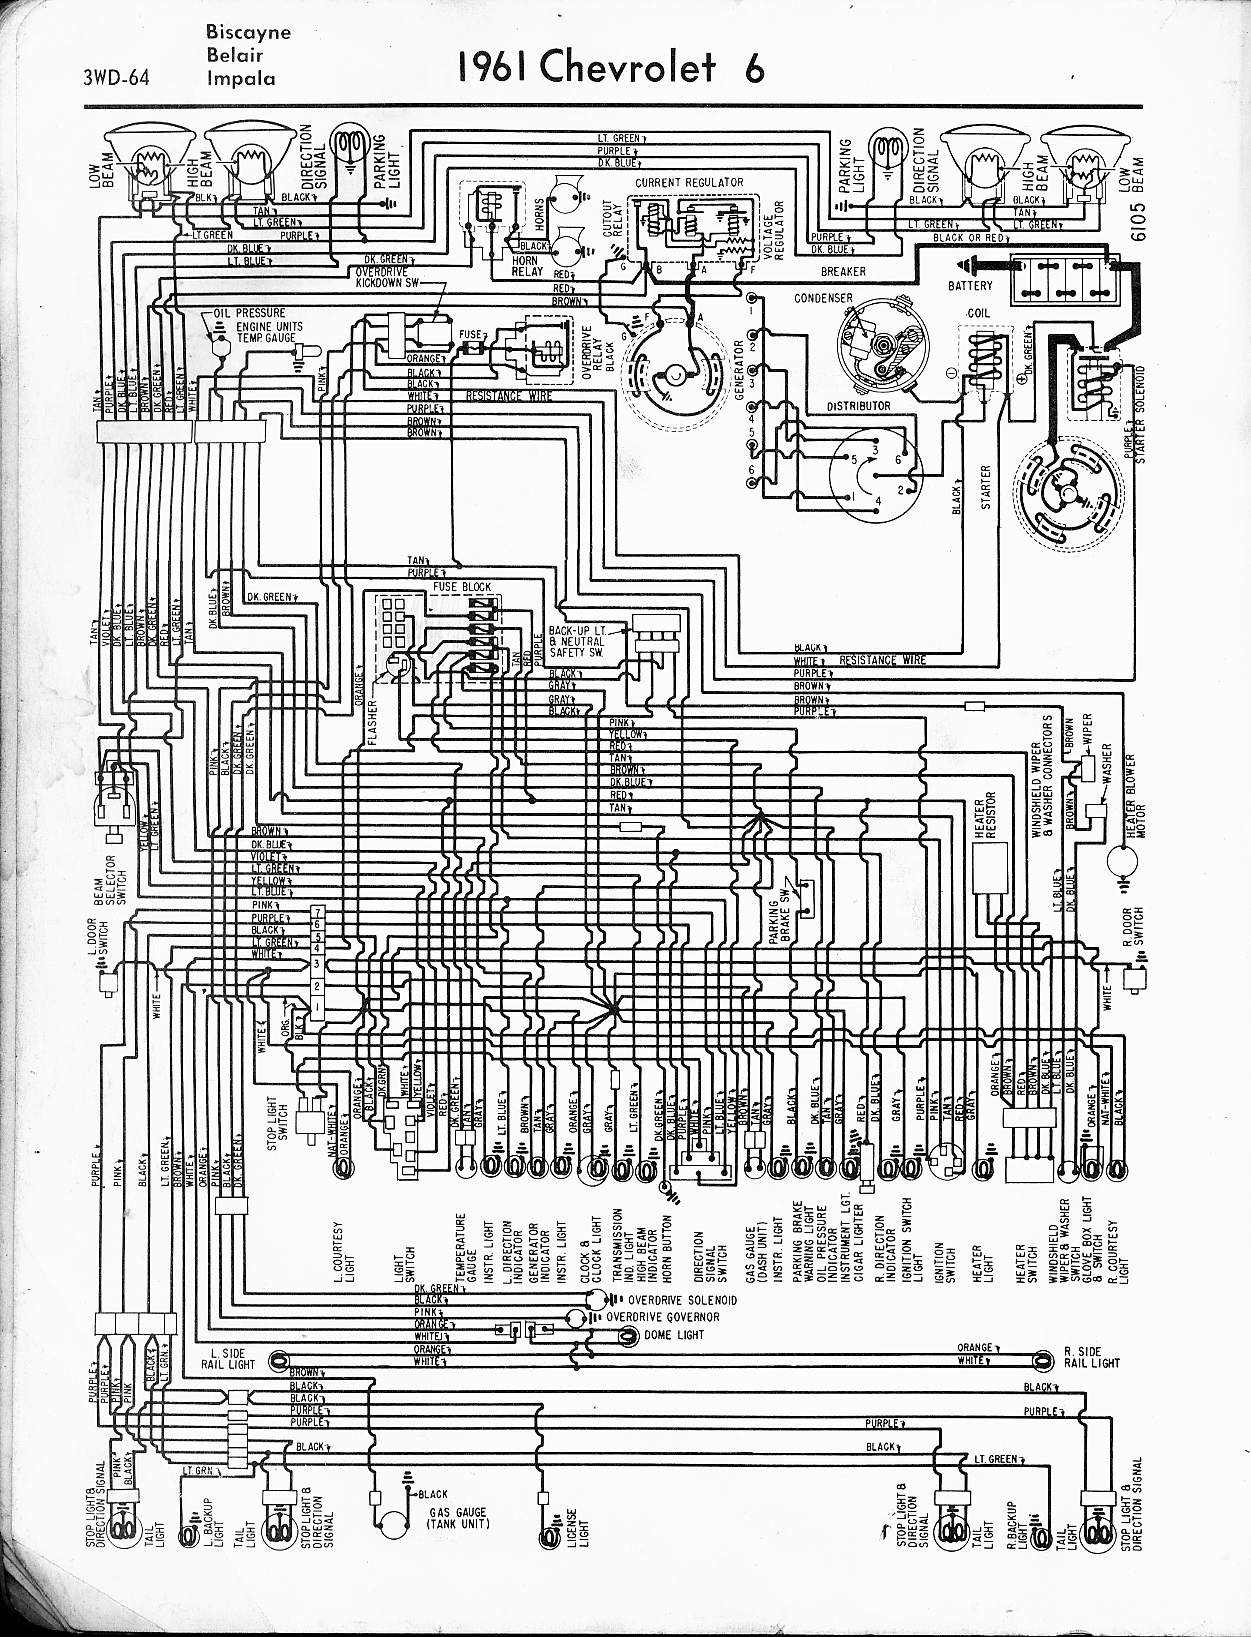 57 65 Chevy Wiring Diagrams 2001 Impala Parts Diagram 2001 Impala Wiring  Harness